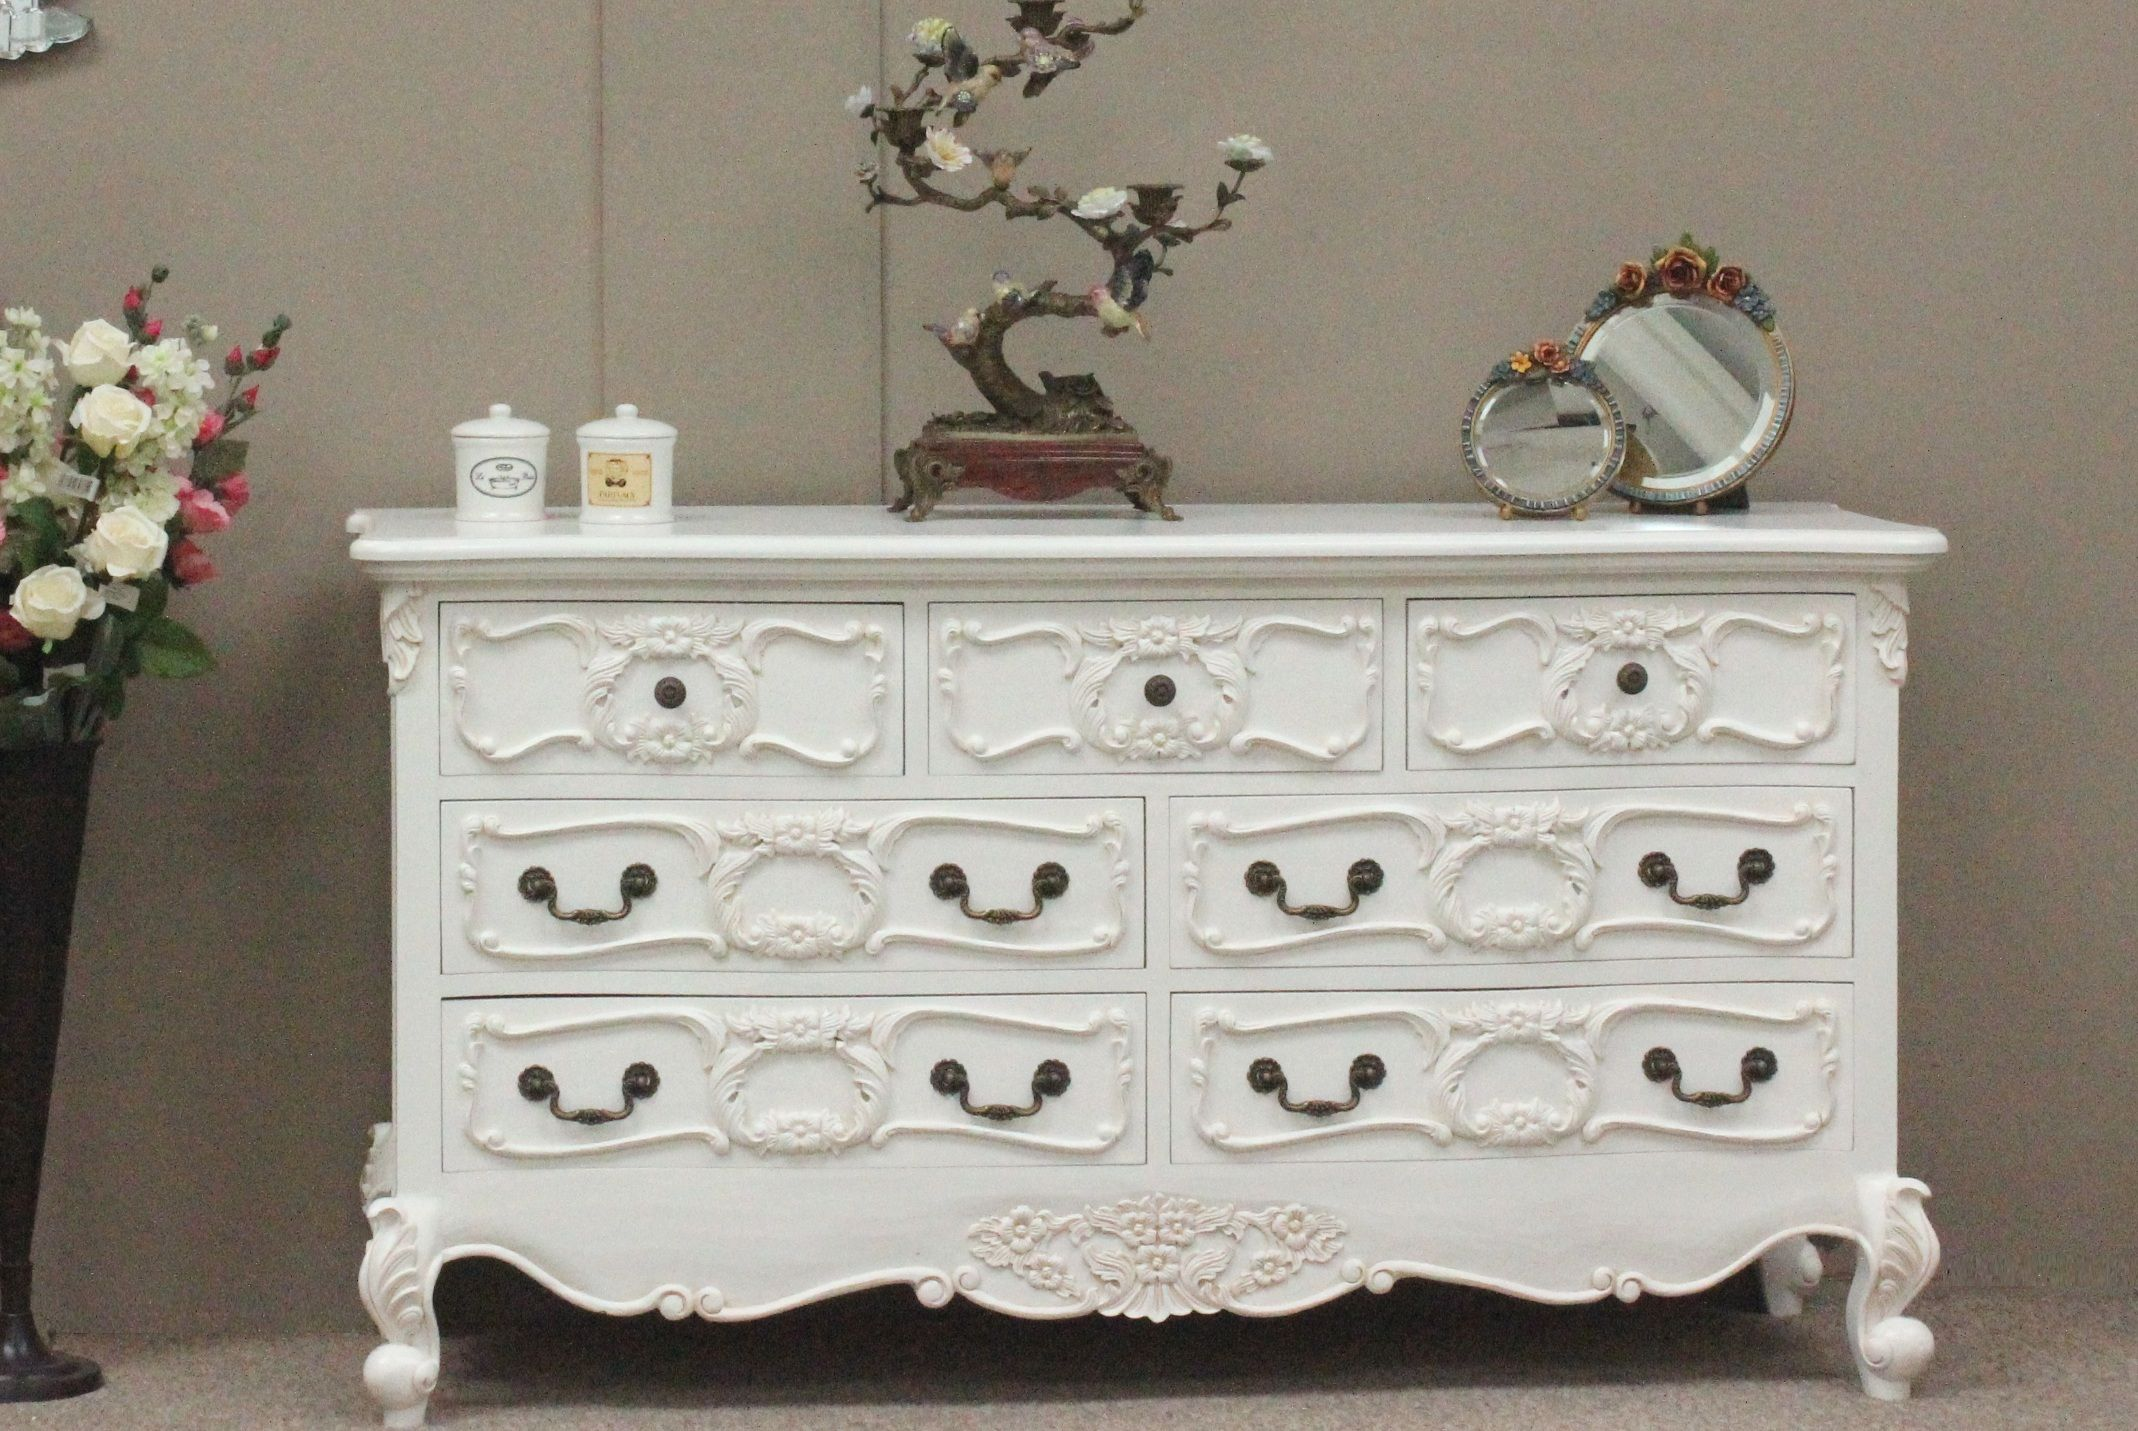 Canapé Shabby Chic baroque 7 drawer chest - the french furniture company